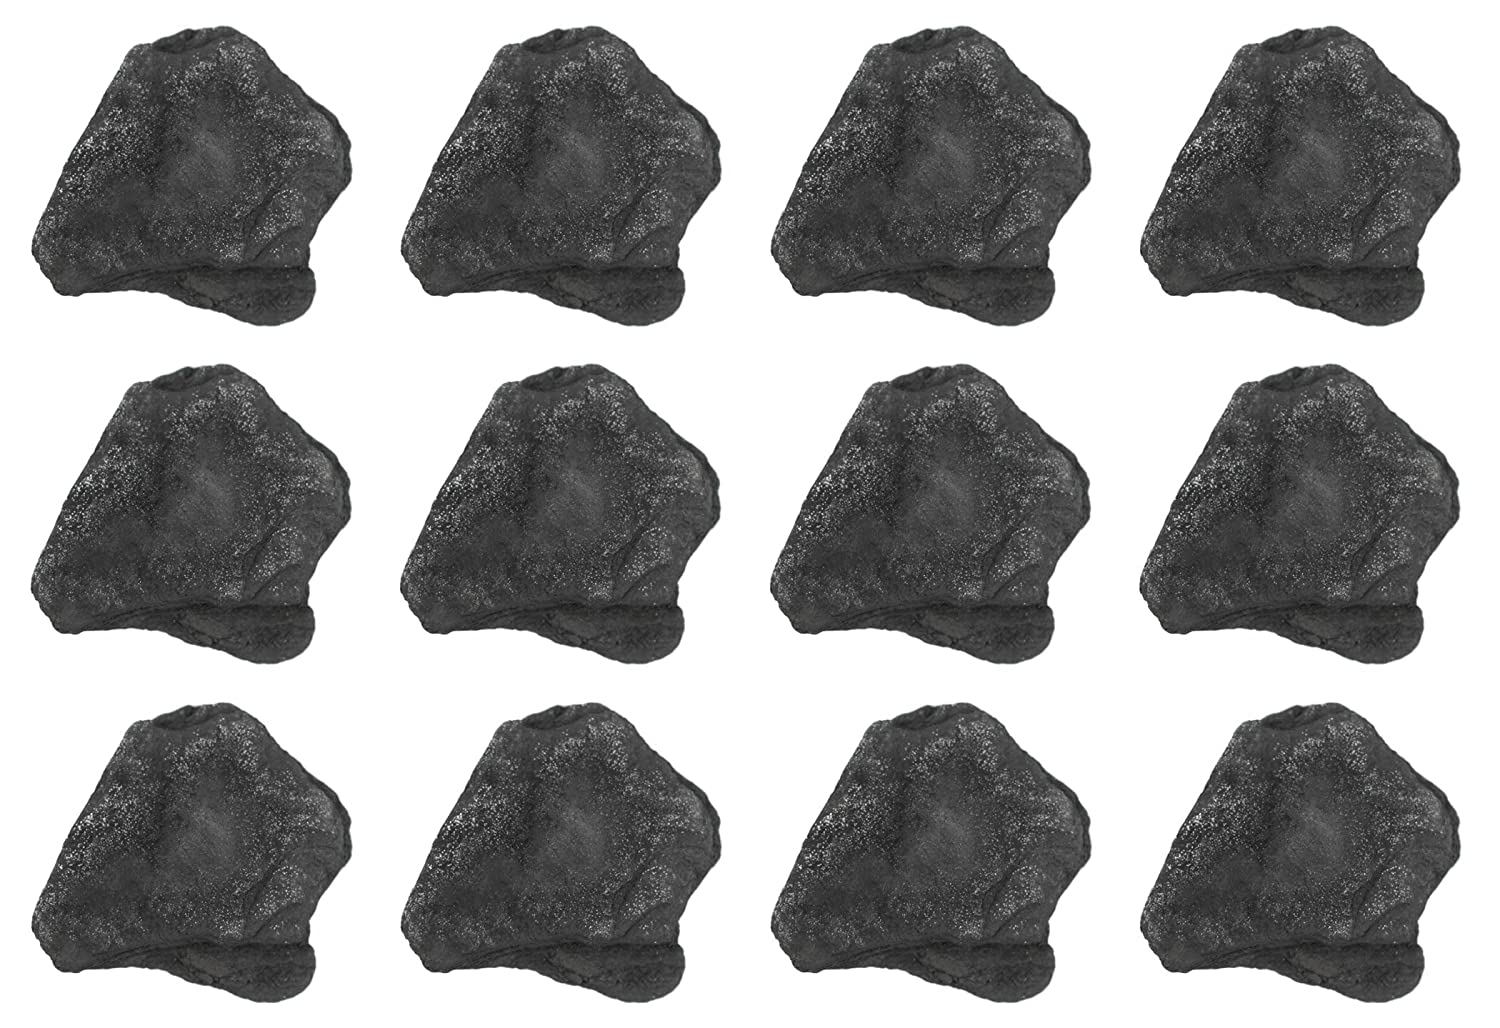 Great for Science Classrooms Geologist Selected /& Hand Processed 1 Metamorphic Rock Specimens Approx 6PK Raw Anthracite Coal Eisco Labs Class Pack